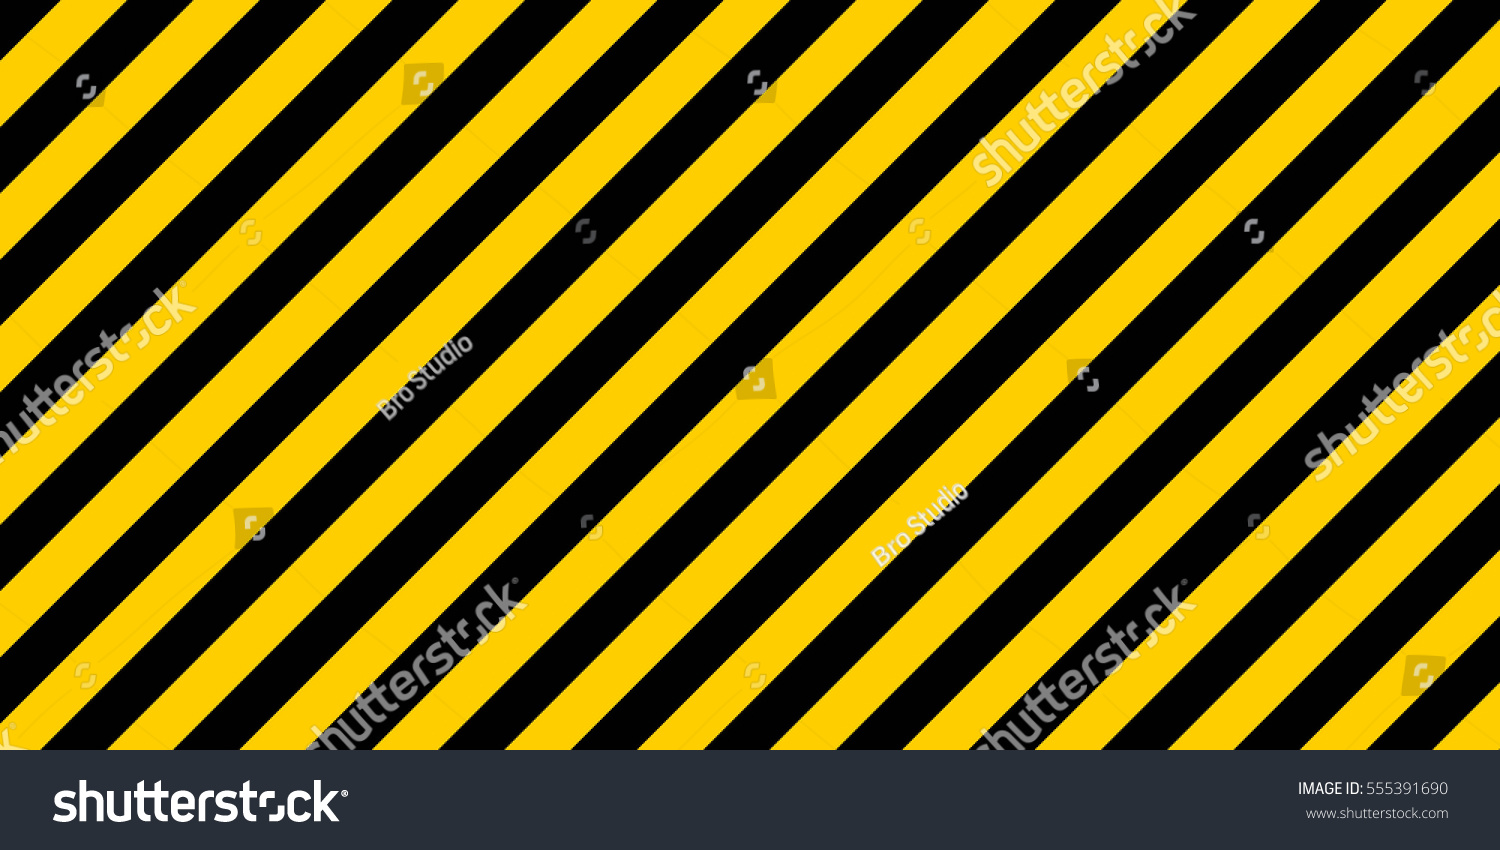 Border frame with black and yellow stripe on white background - Border Frame With Black And Yellow Stripe On White Background Warning Striped Rectangular Background Yellow Download